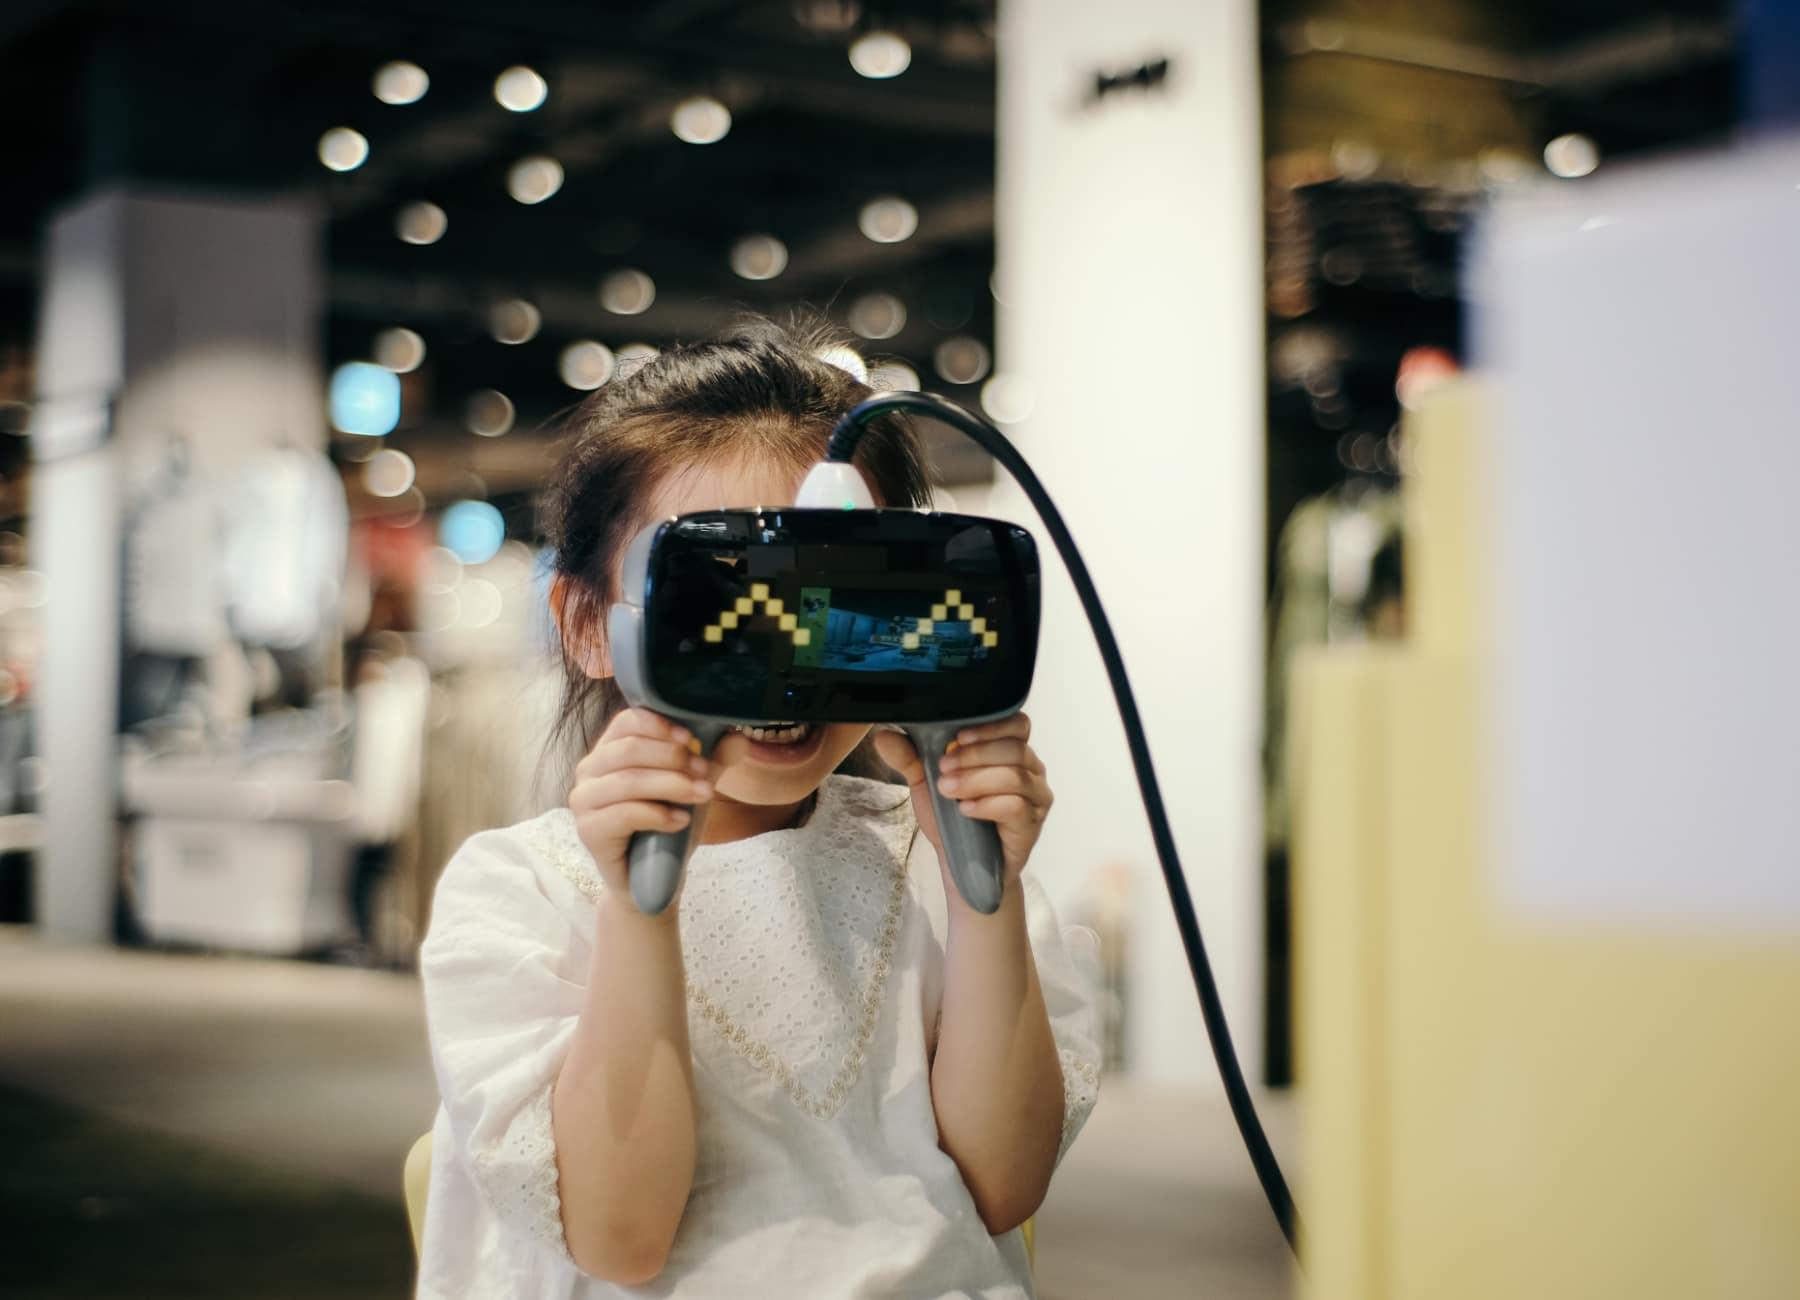 AR & VR are Becoming The Future of Gaming